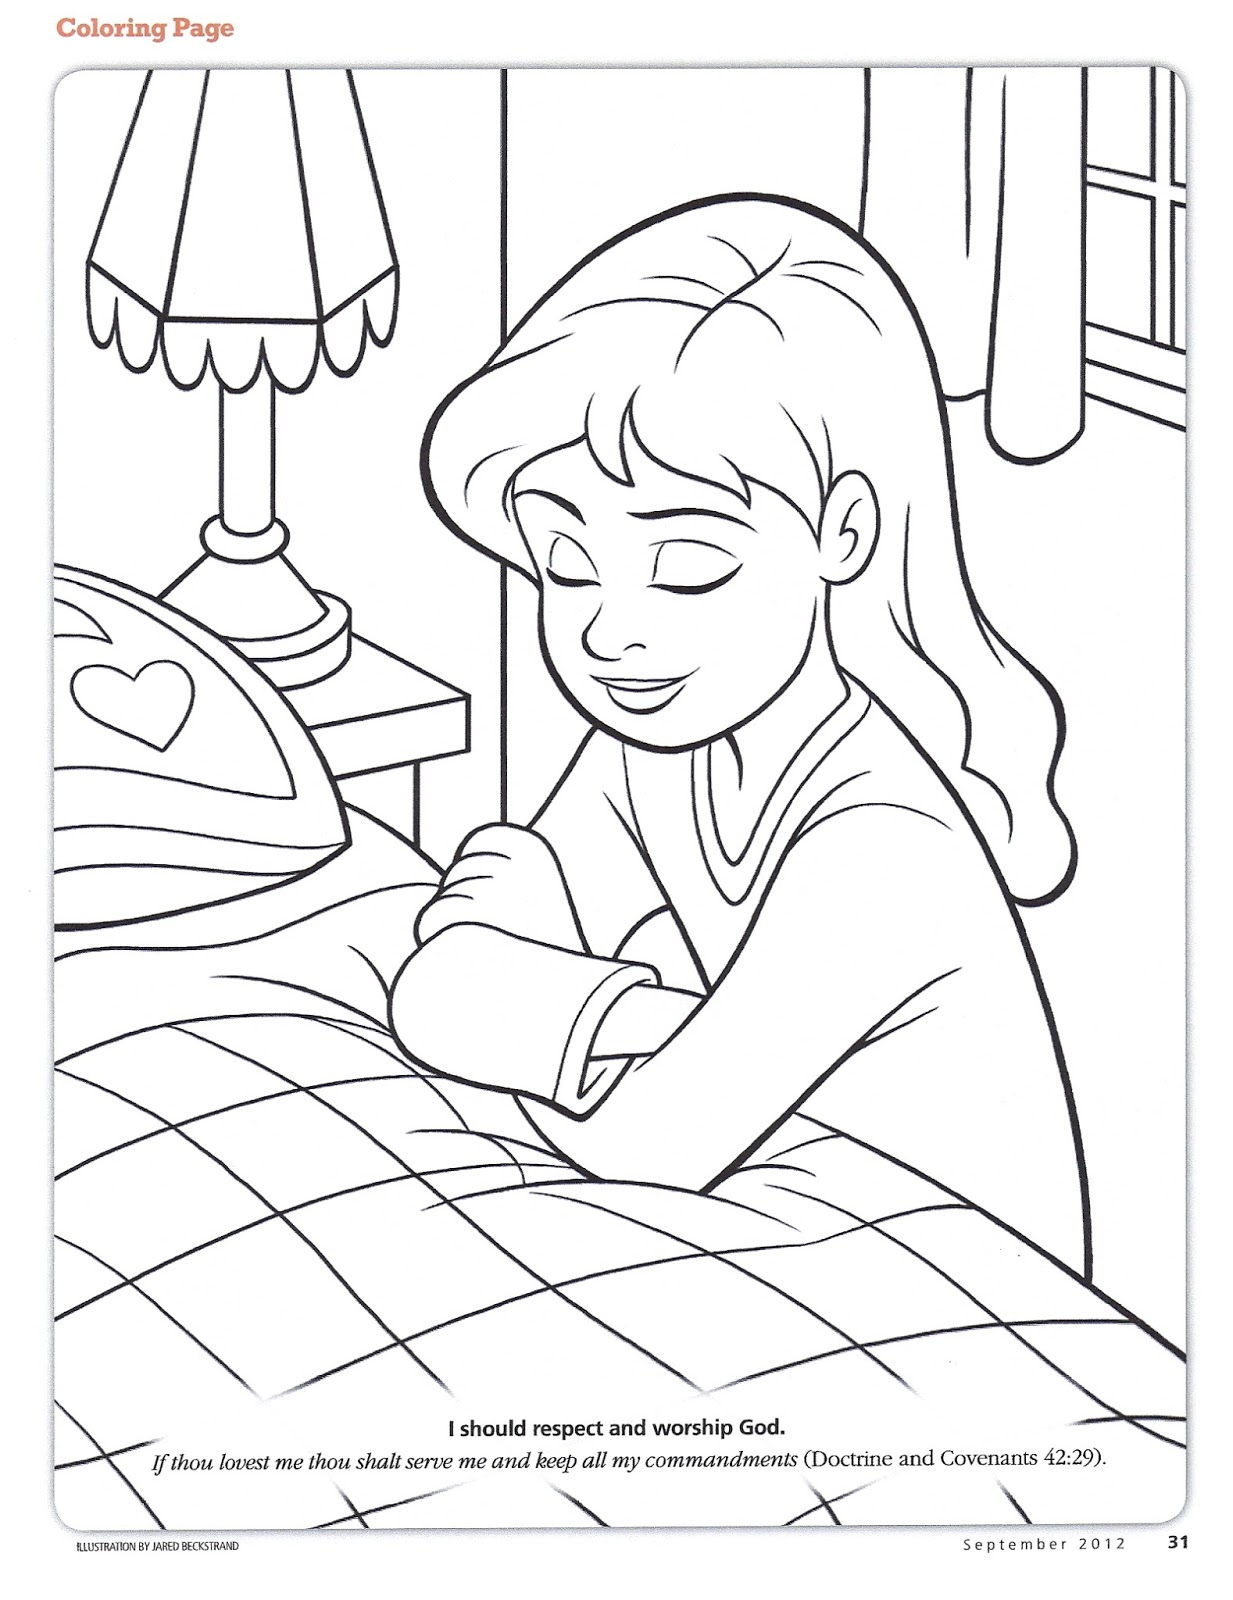 kids prayer coloring pages - photo#15